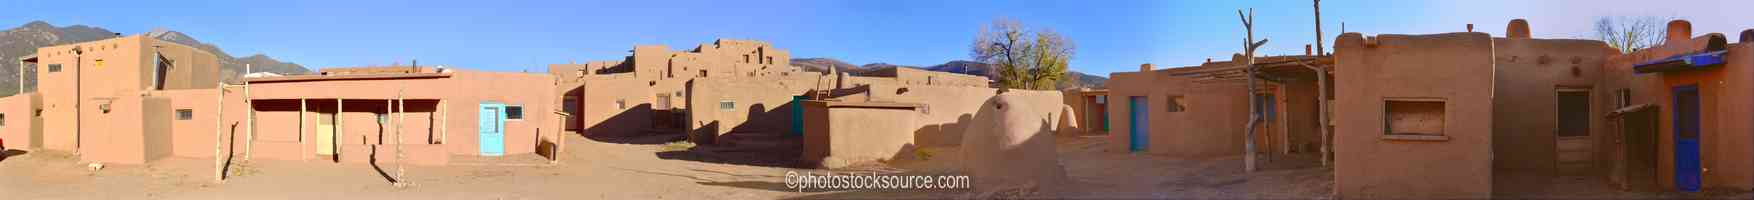 Taos Pueblo Adobe Buildings